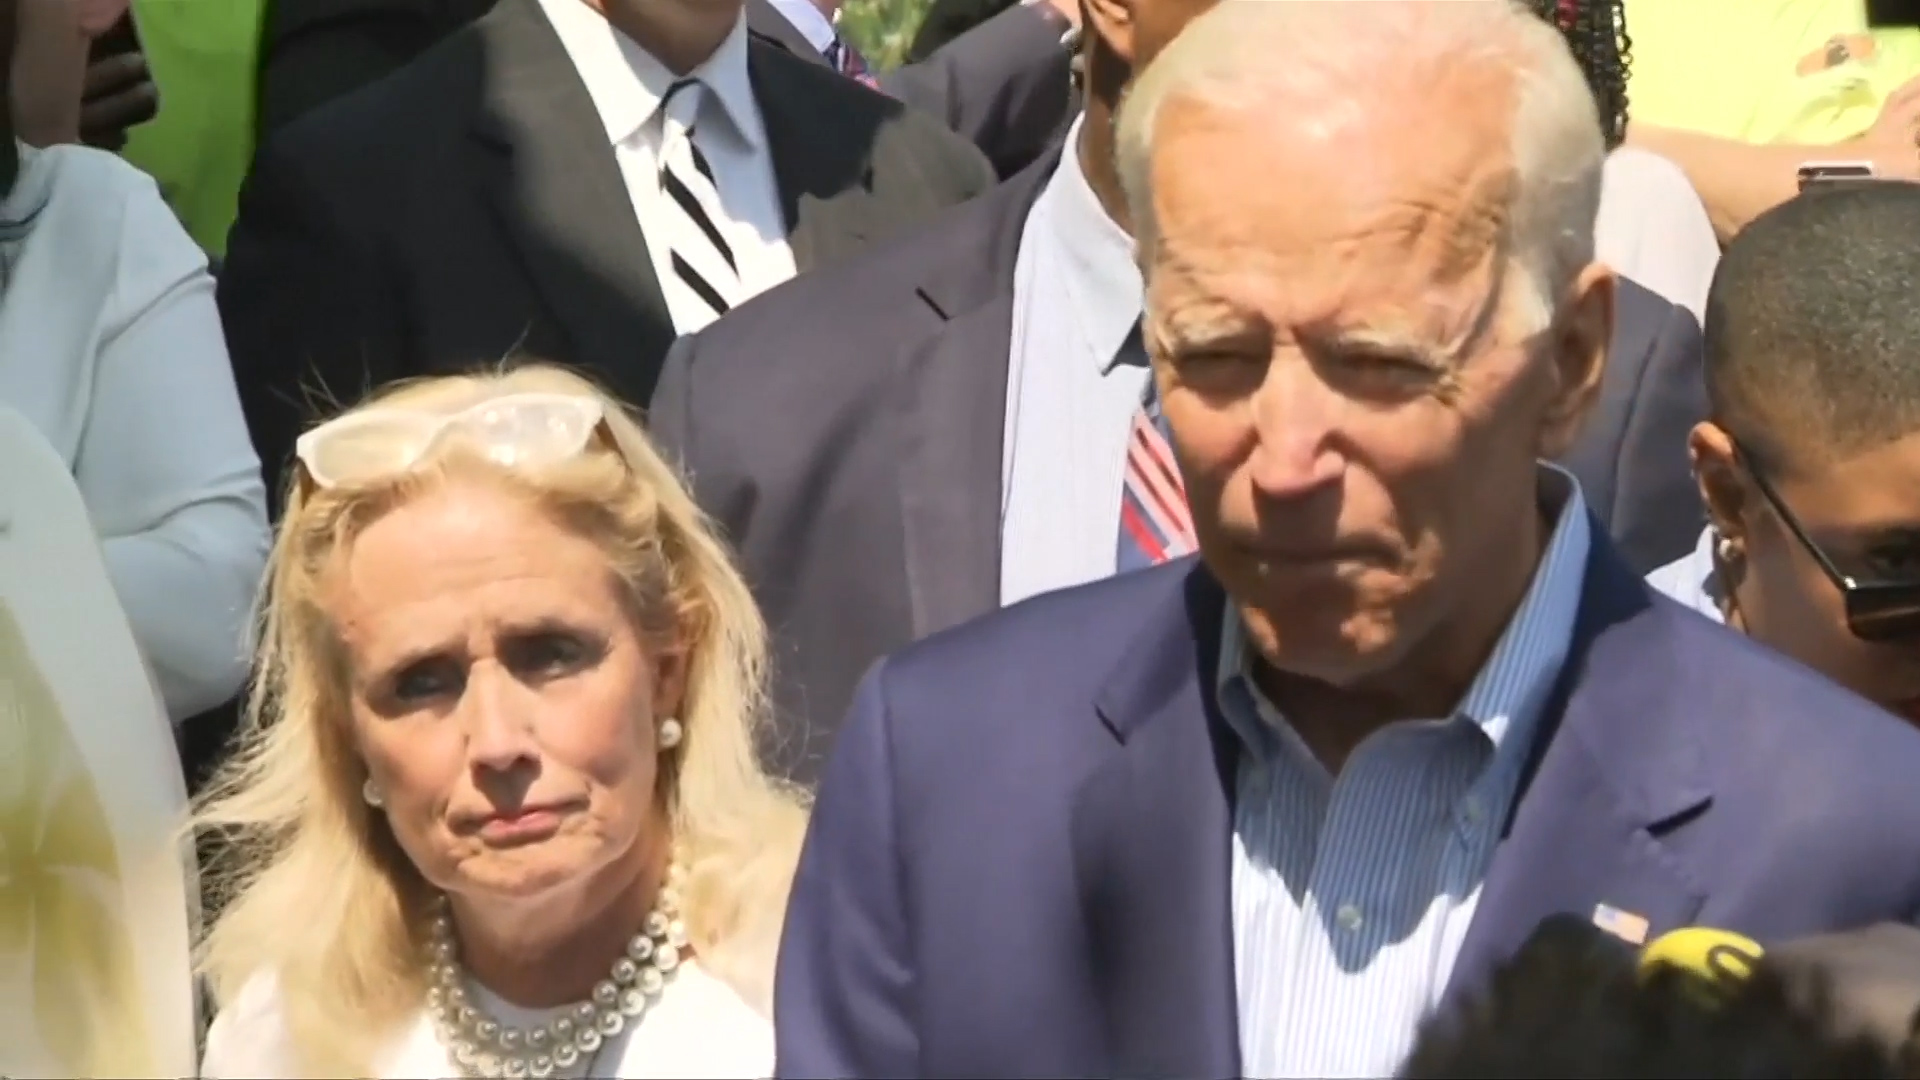 Biden Says Trump's Words Not So Different From El Paso Shooter's